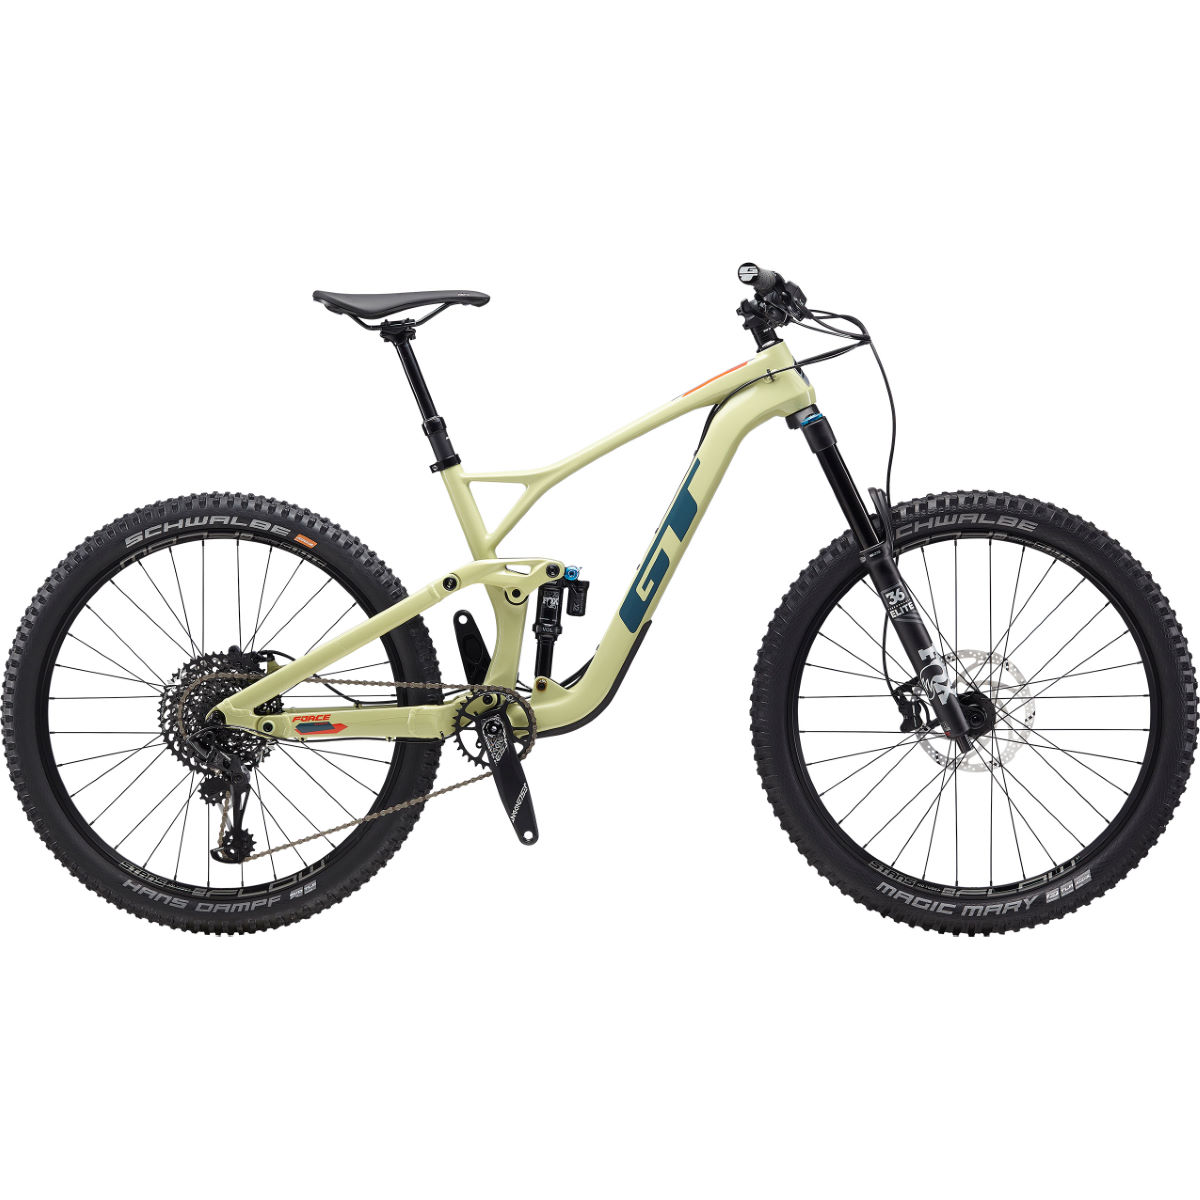 GT GT Force Carbon Expert 27.5 Bike (2020)   Full Suspension Mountain Bikes